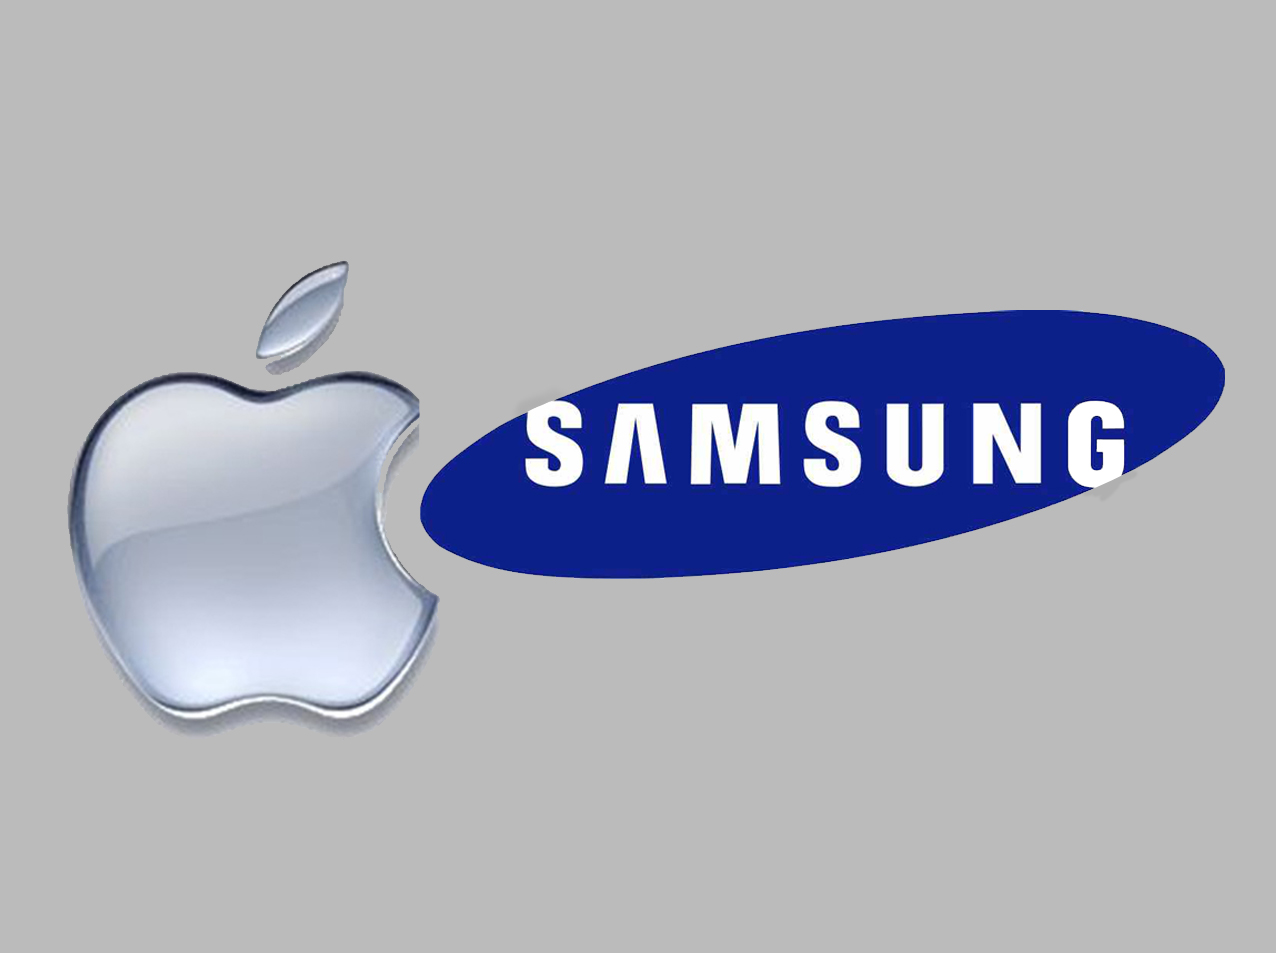 http://www.applerumors.it/wp-content/uploads/2013/02/Apple-vs-Samsung.jpg